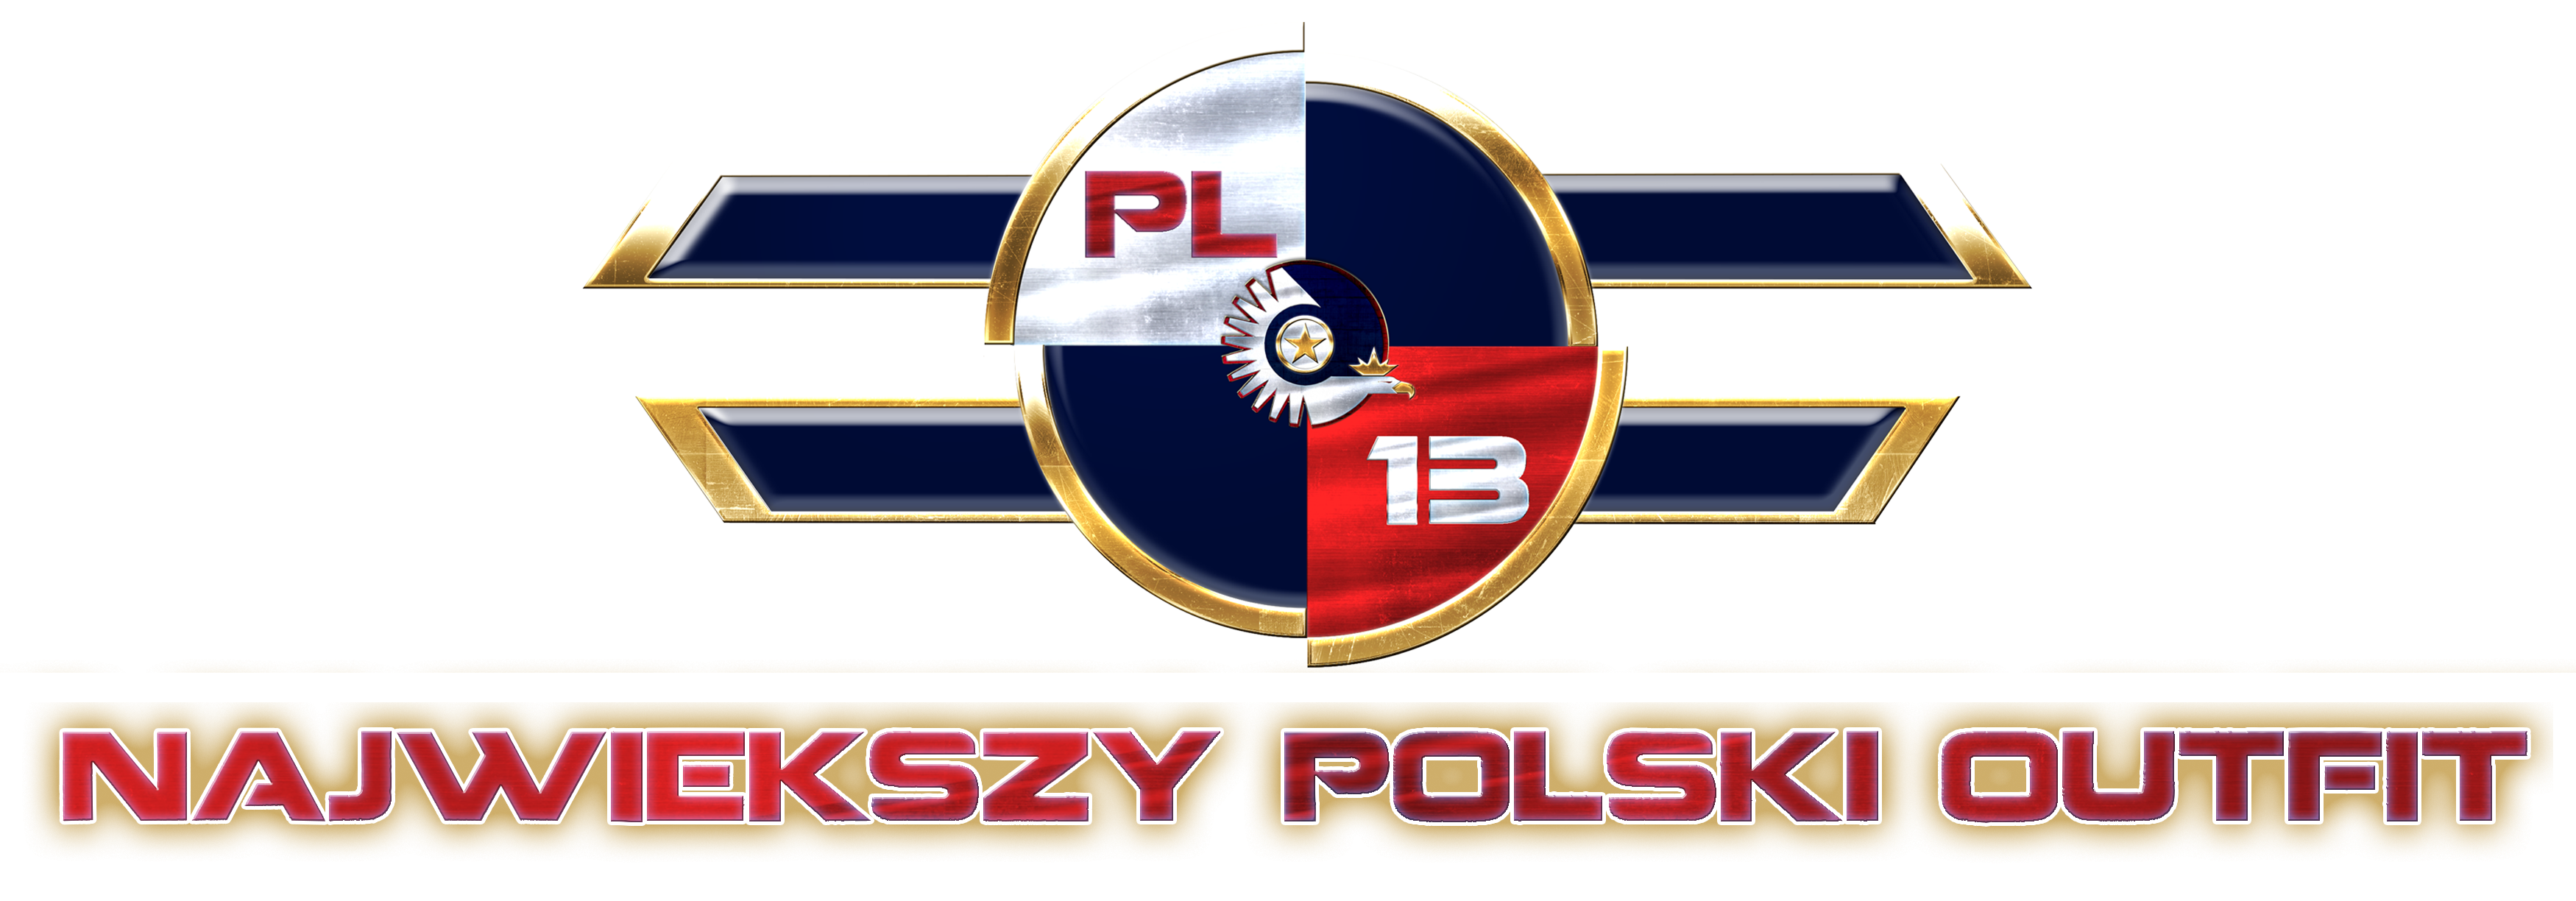 PL13 - 13th Polish Company